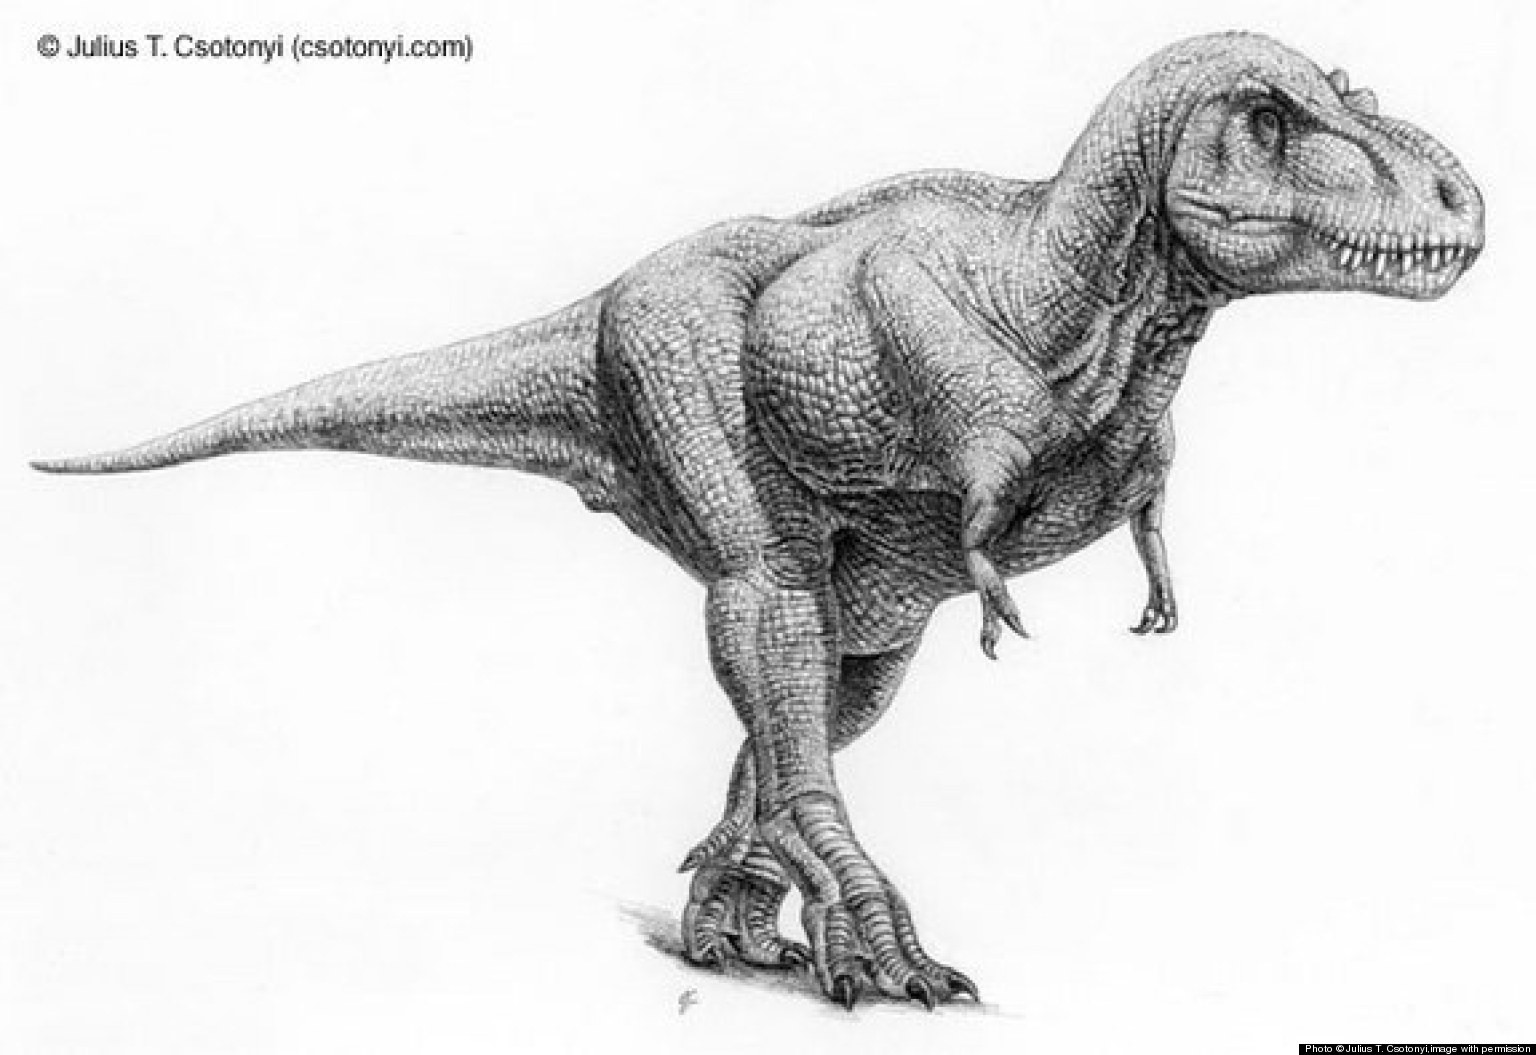 a study of dinosaurs More than a century of theory about the evolutionary history of dinosaurs has been turned on its head following the publication of new research the work suggests that the family groupings need to be rearranged, redefined and renamed and also that dinosaurs may have originated in the northern hemisphere rather than the southern, as current.